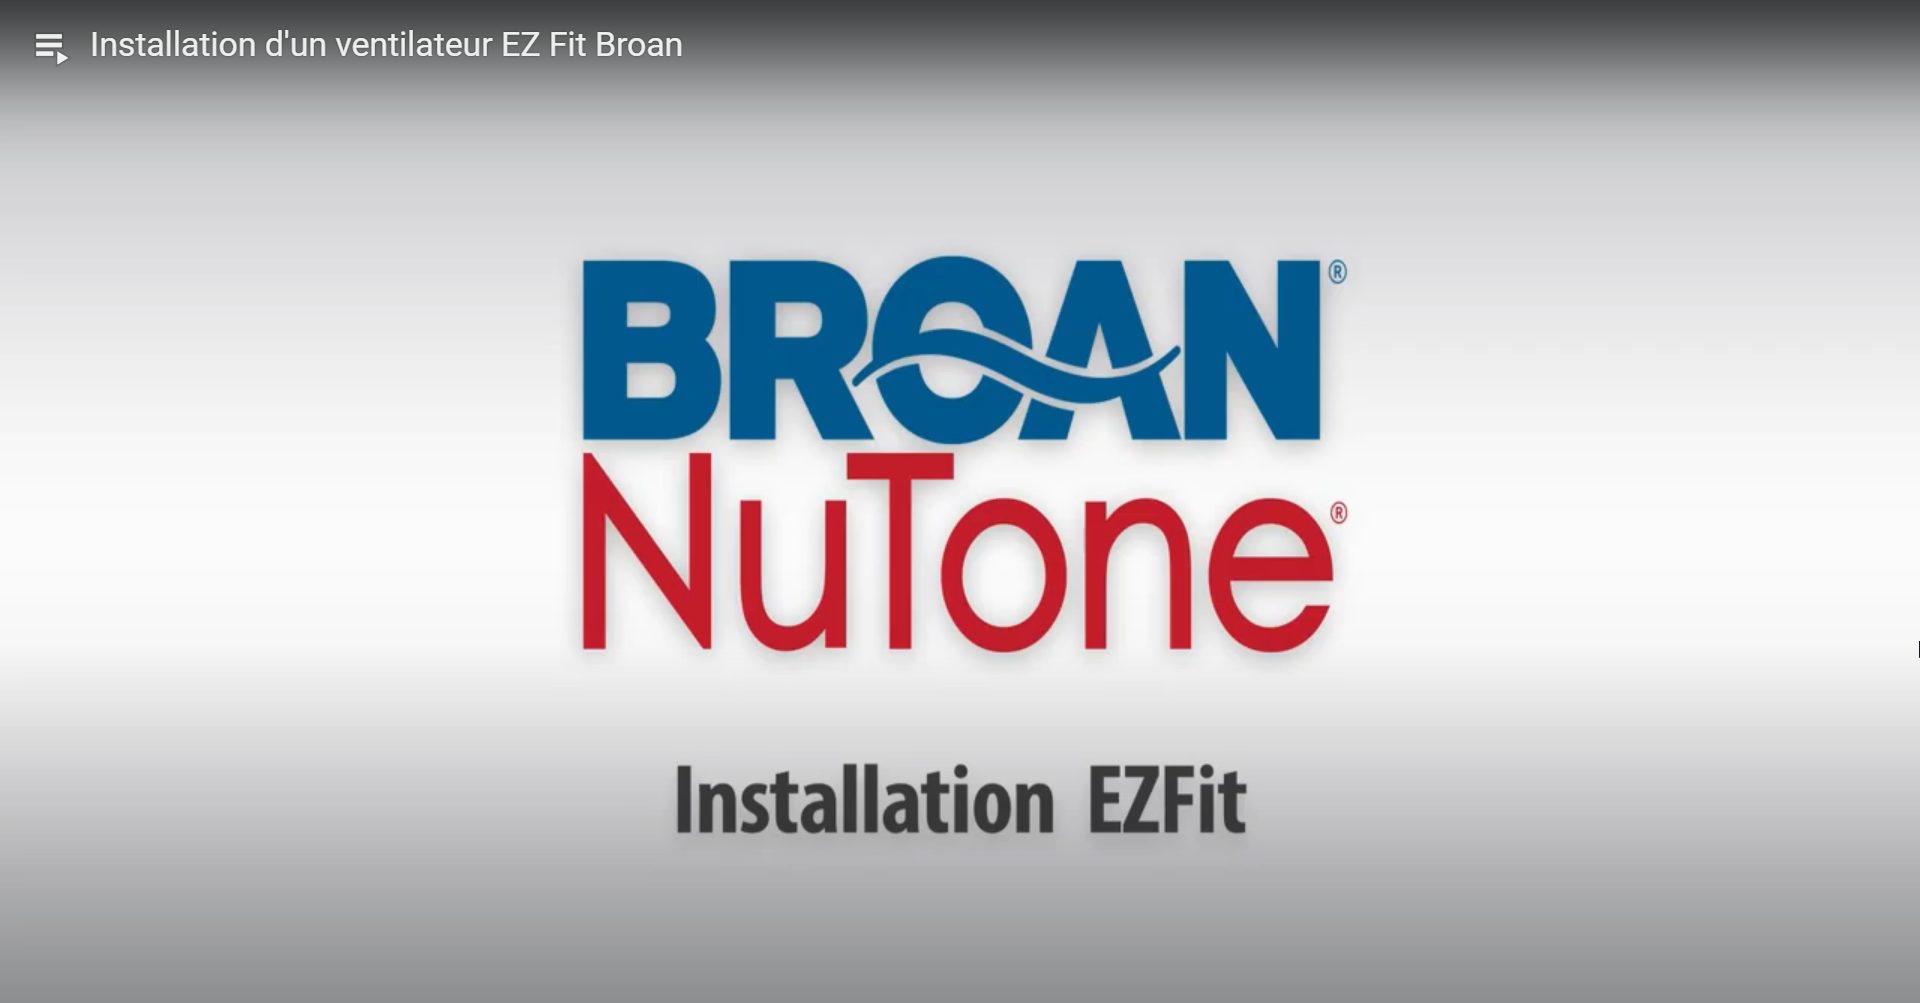 Installation d'un ventilateur EZ Fit Broan